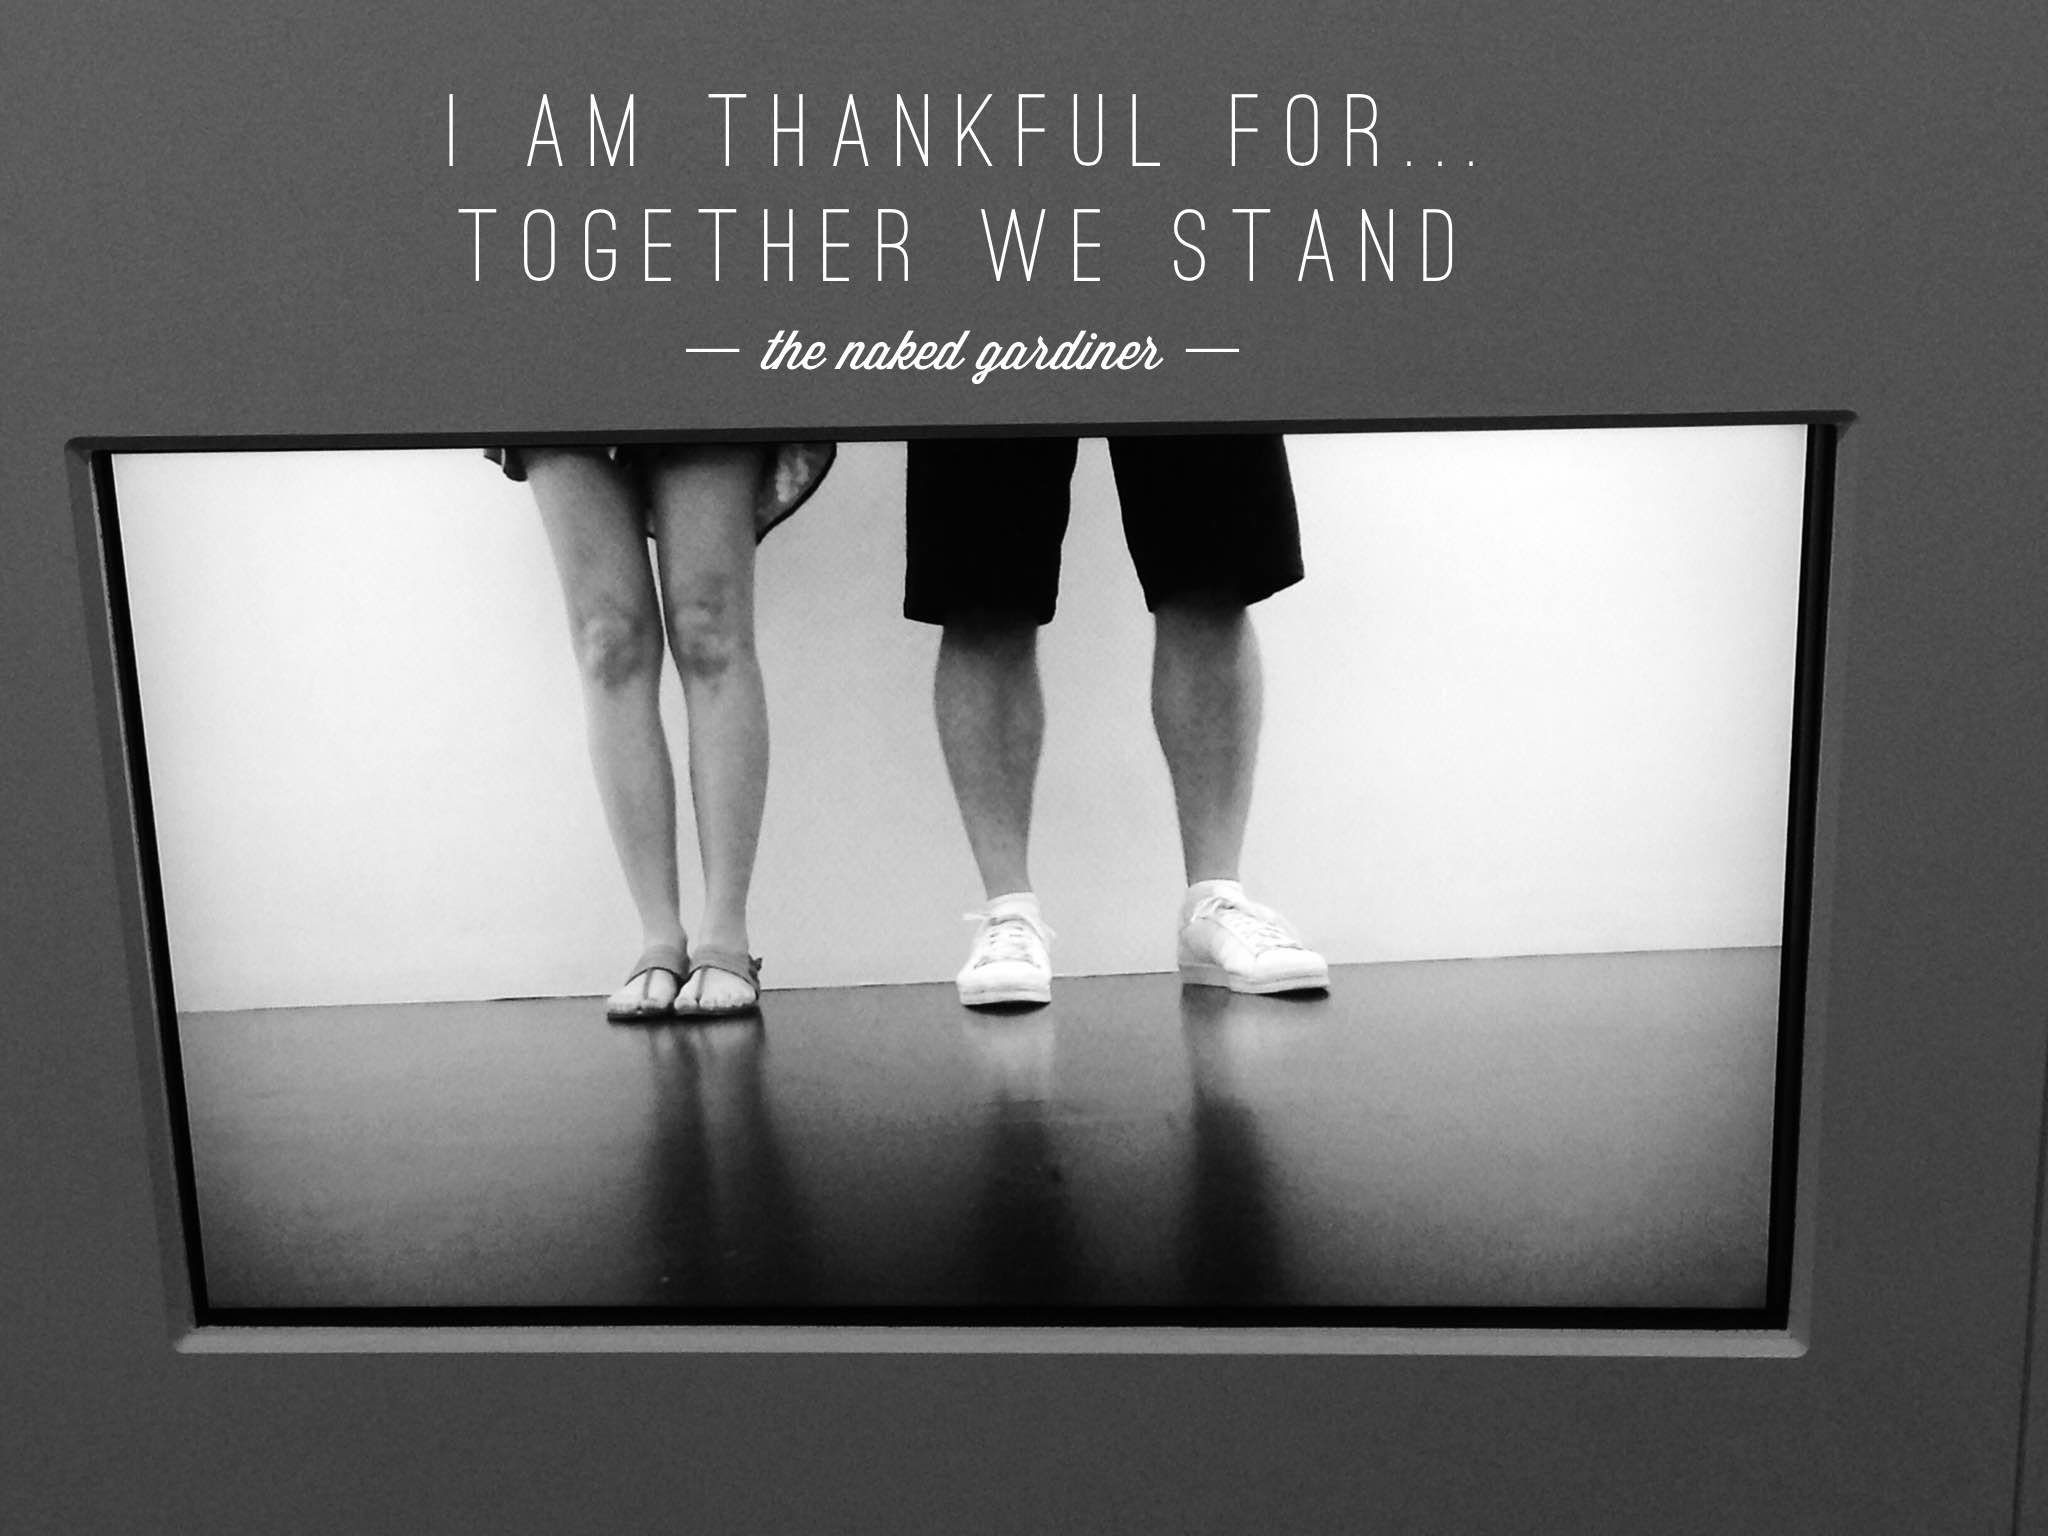 thankful-thursdays-together-we-stand-thenakedgardiner-kathygardiner